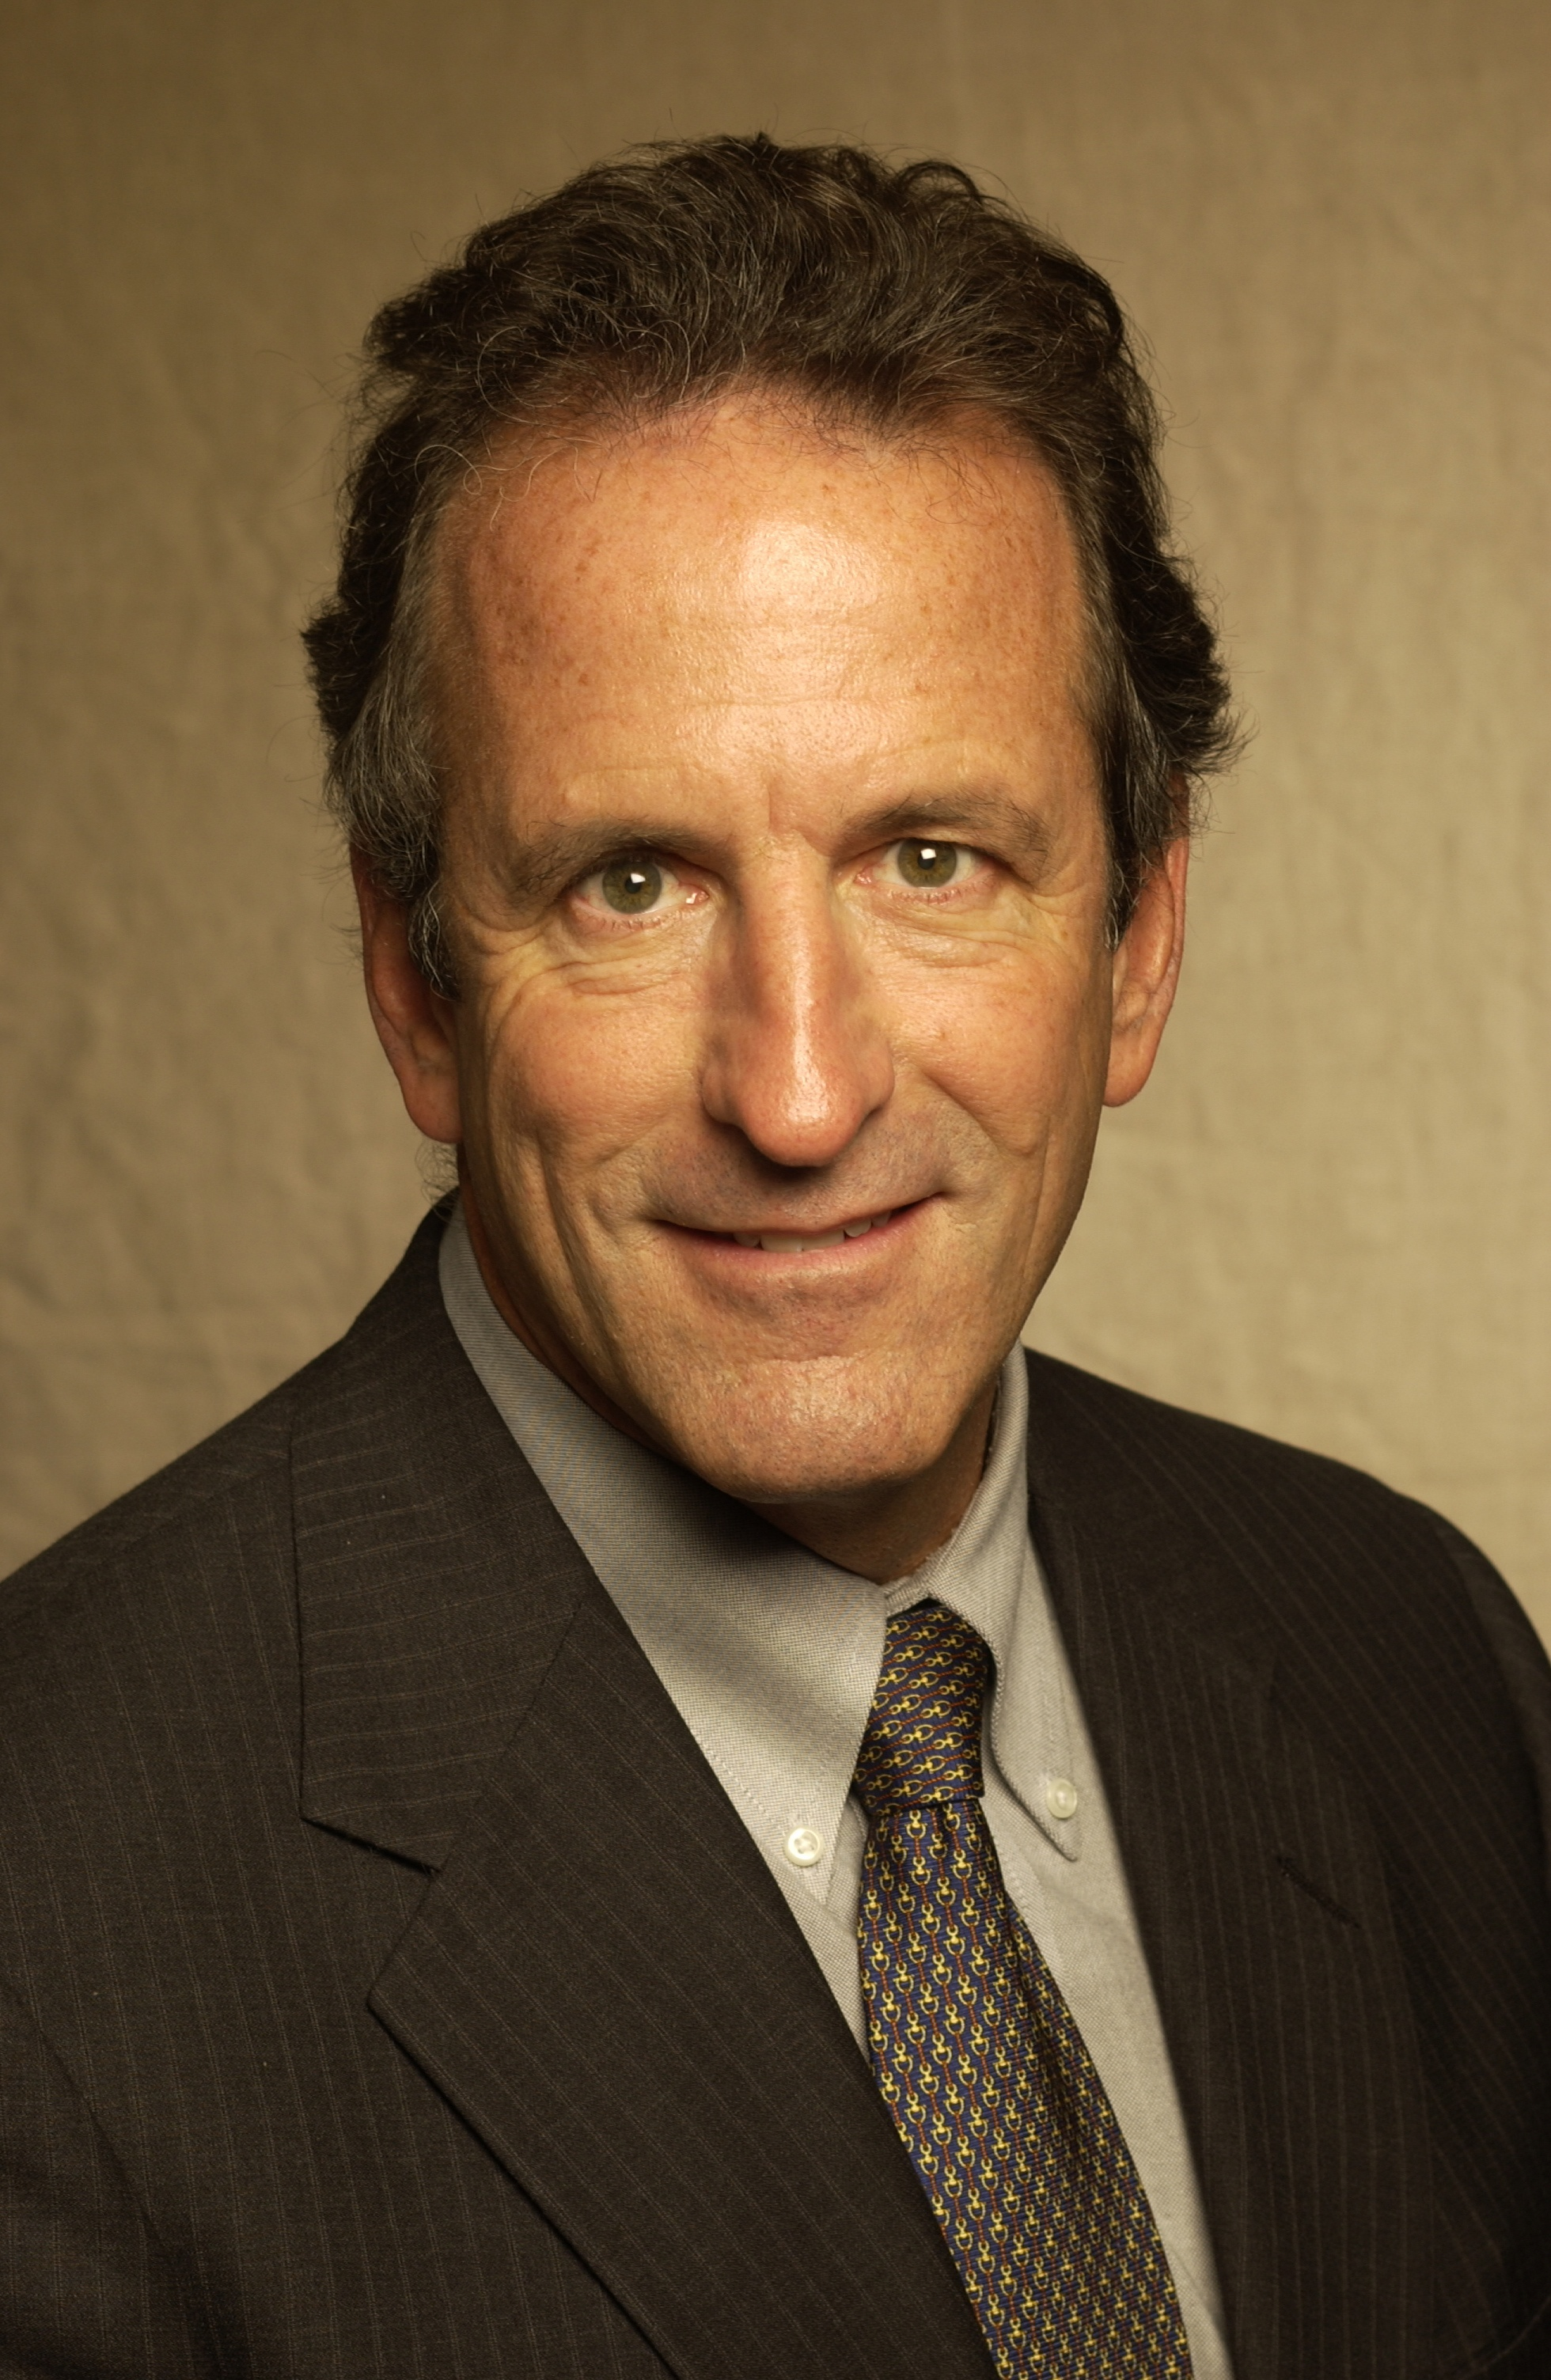 Alan Sokolow, M.D.